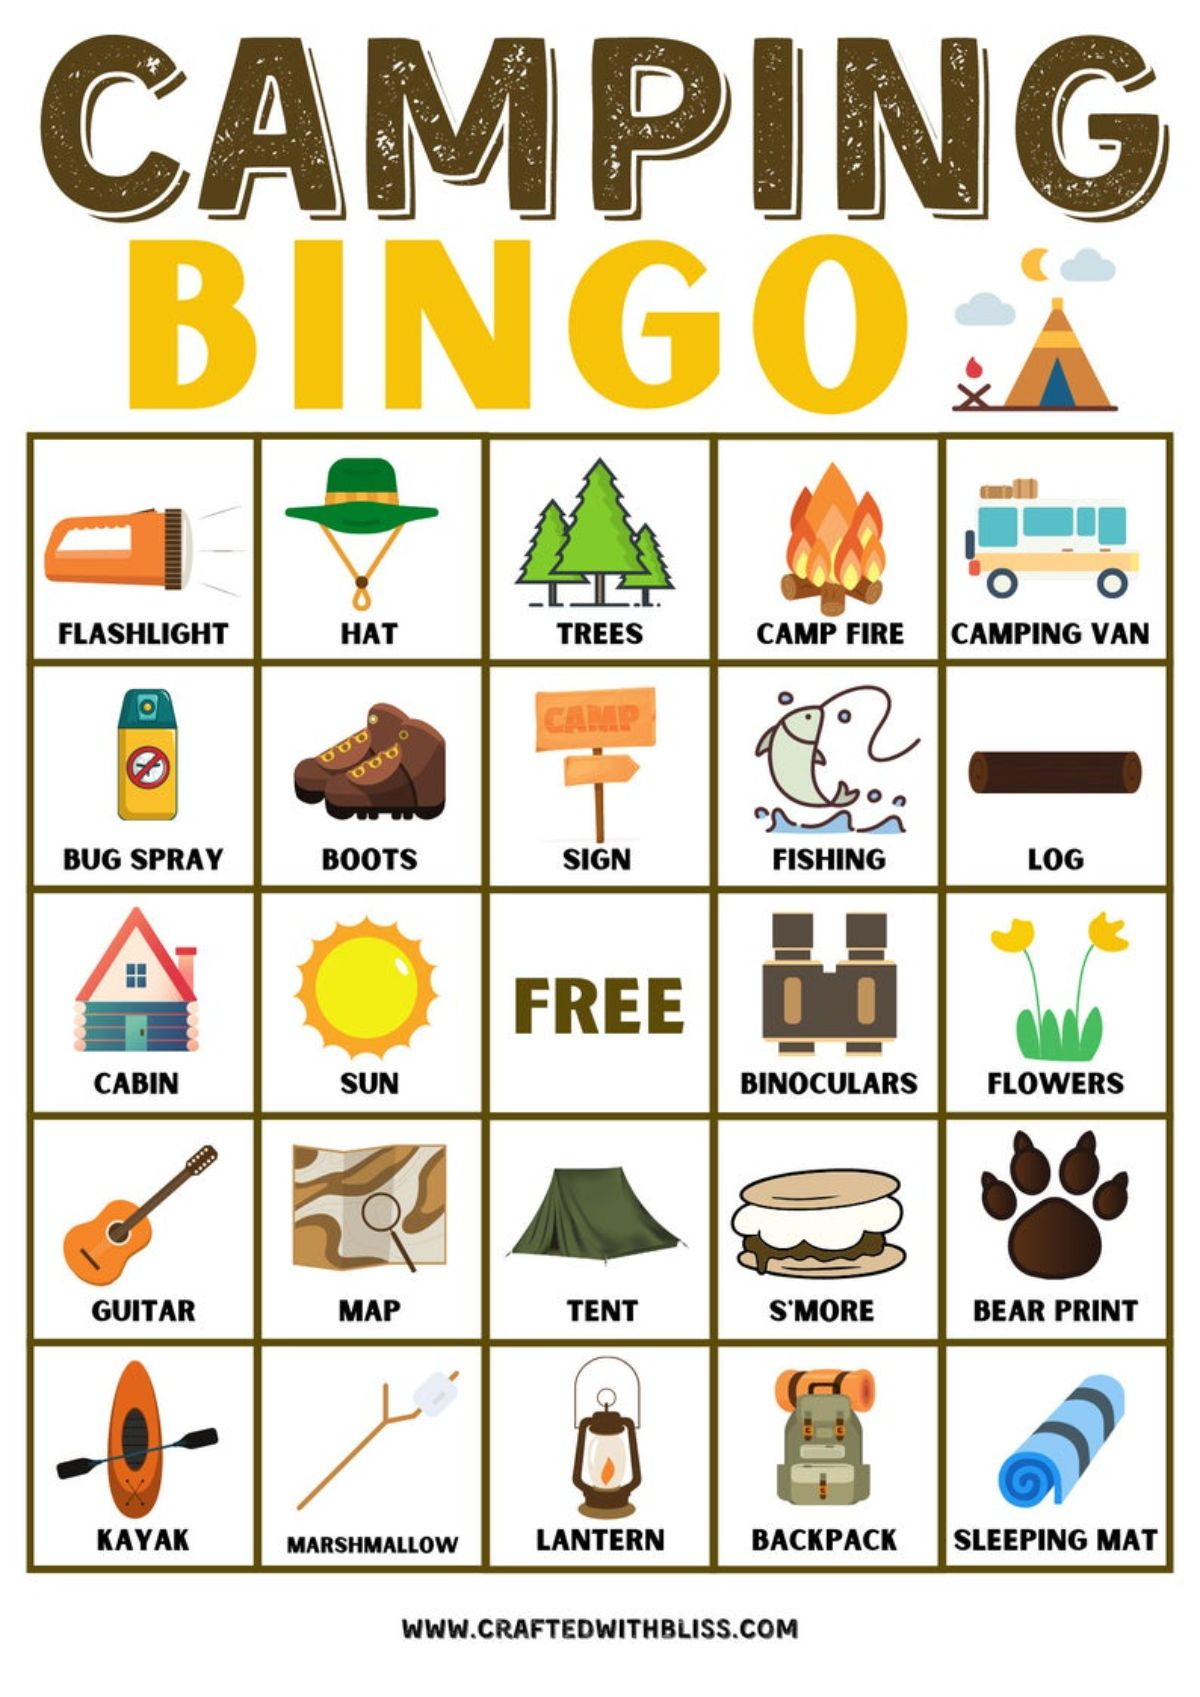 a printout for camping bingo, with the squares filled with images and words to check off